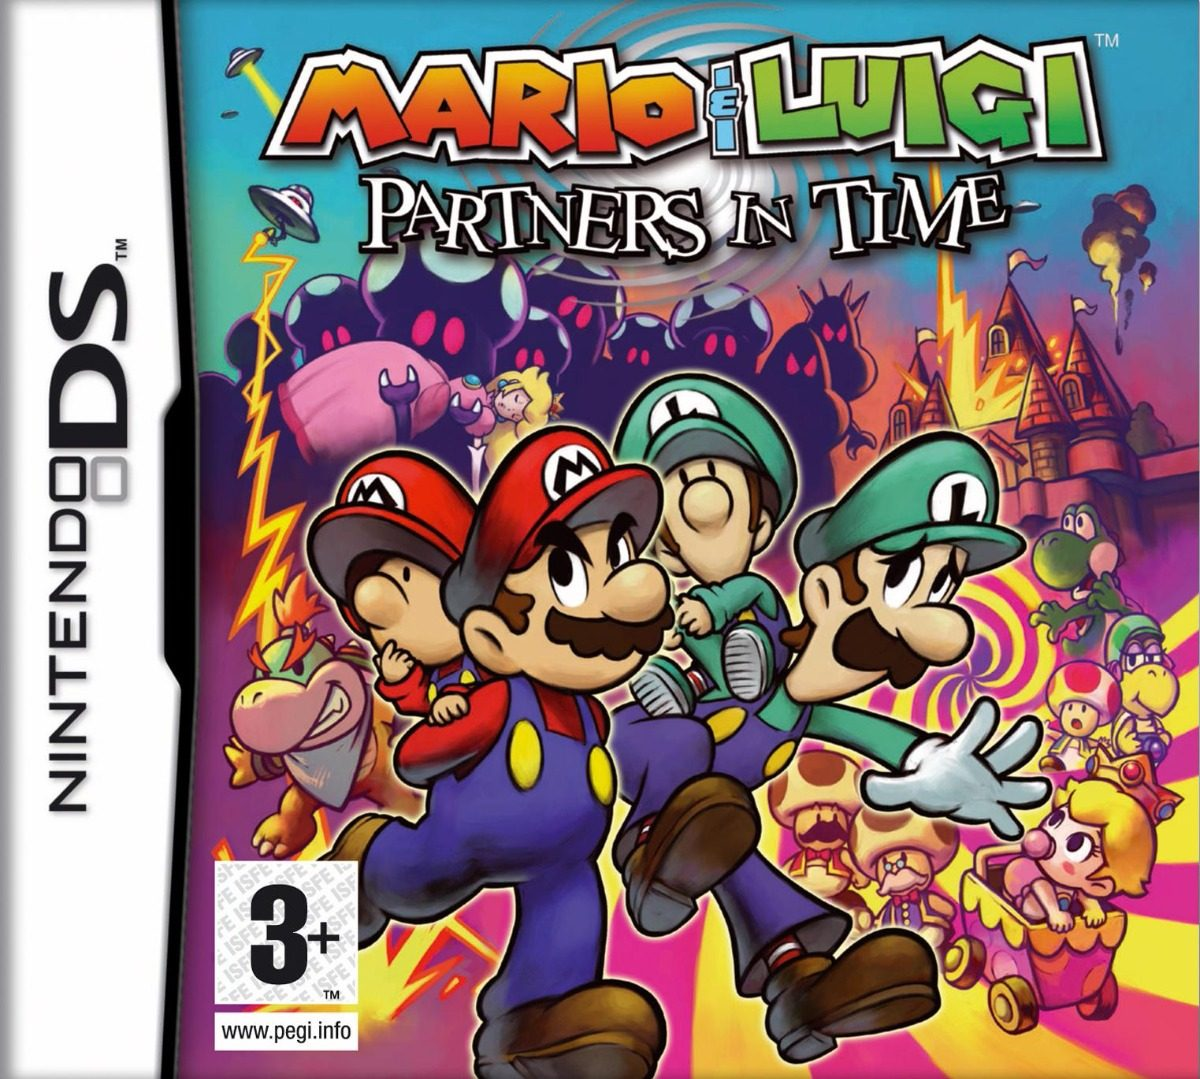 Mario Luigi Partners In Time Juego Nintendo Ds Lite 222 23 En